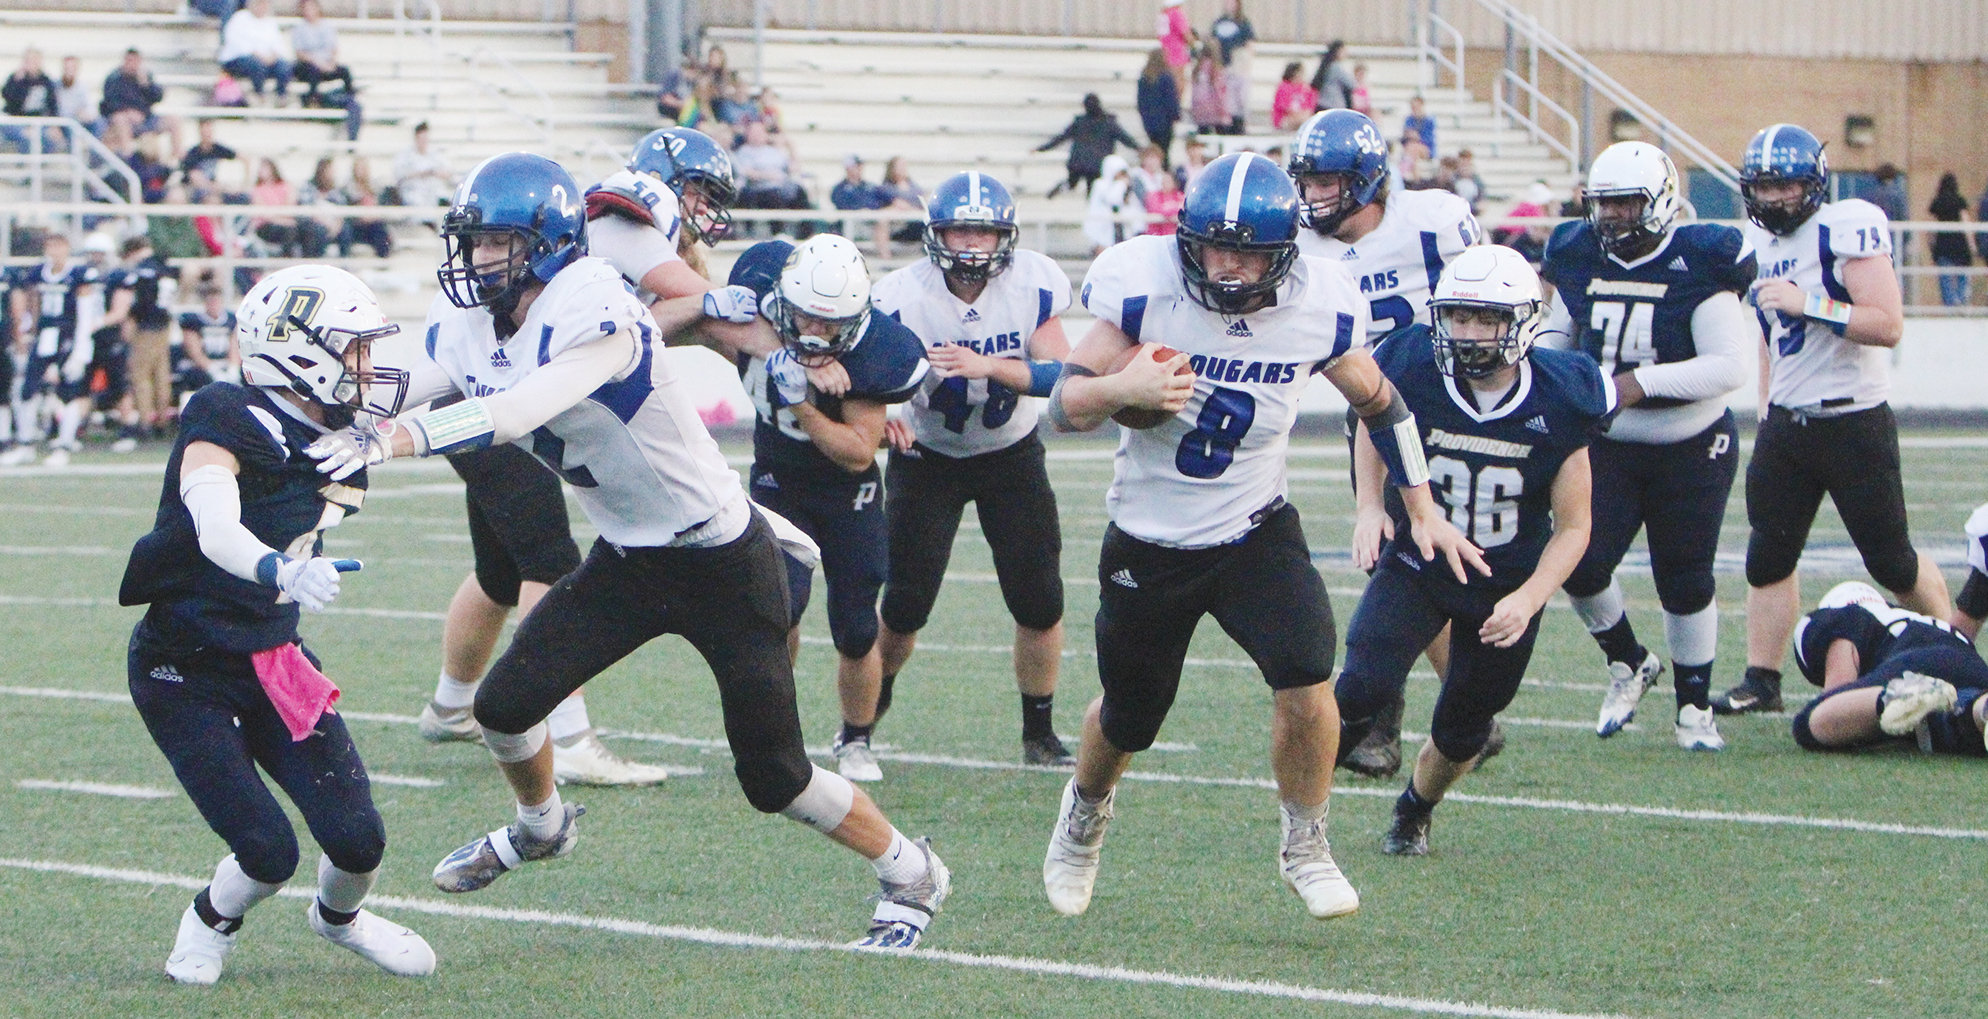 Early offense, late defense lift Cougars